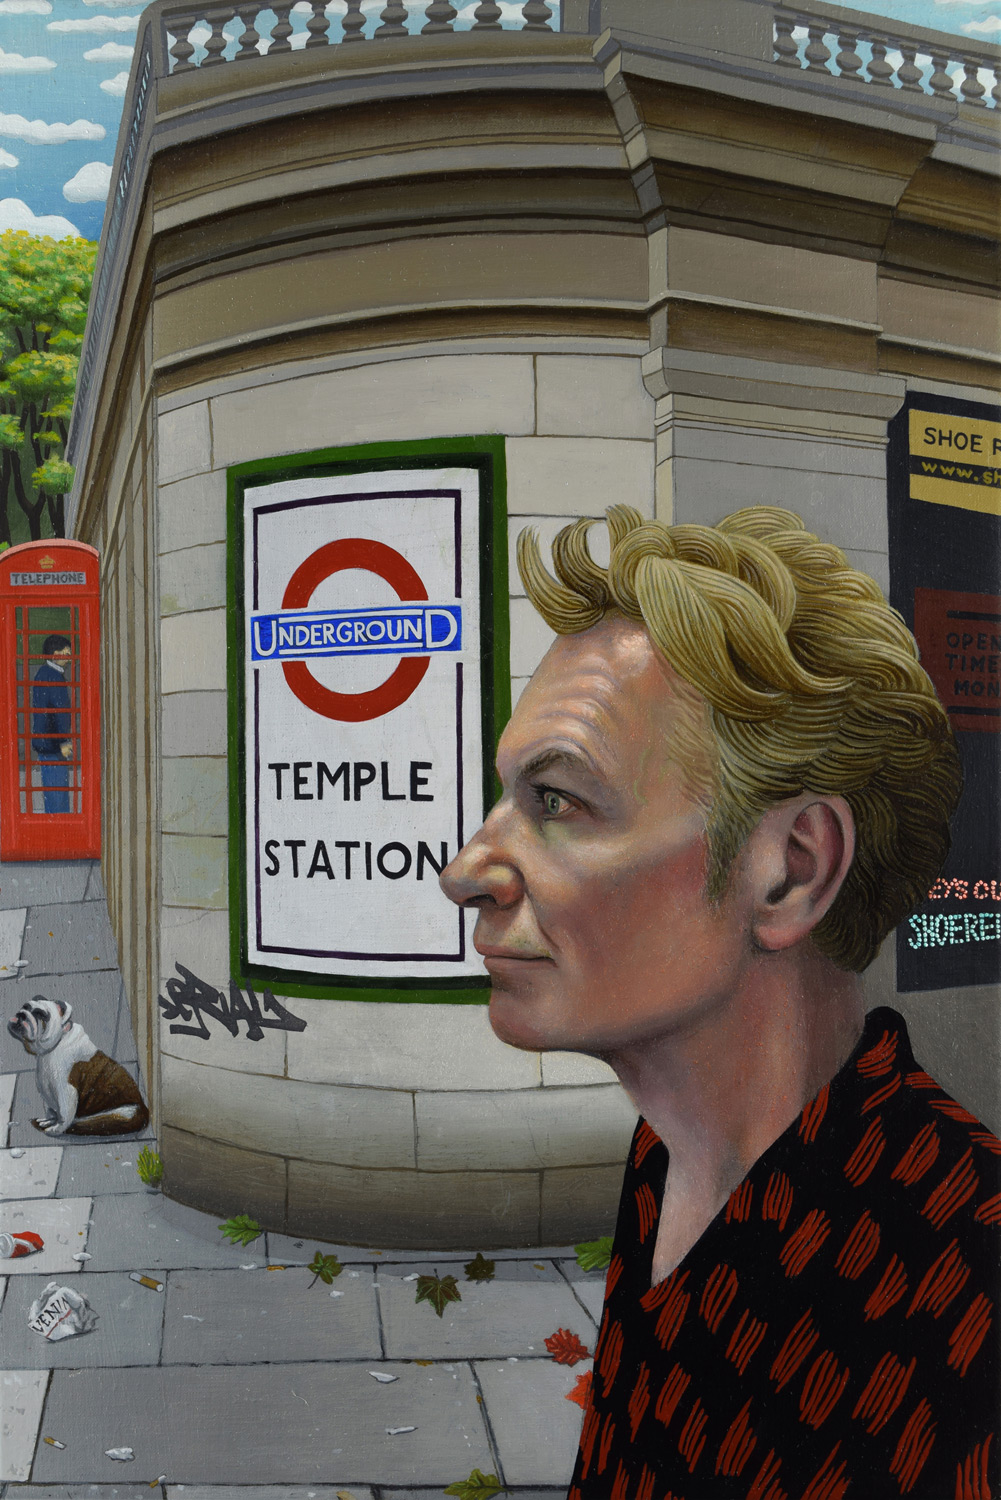 Film-maker Julien Temple and Temple Tube Station